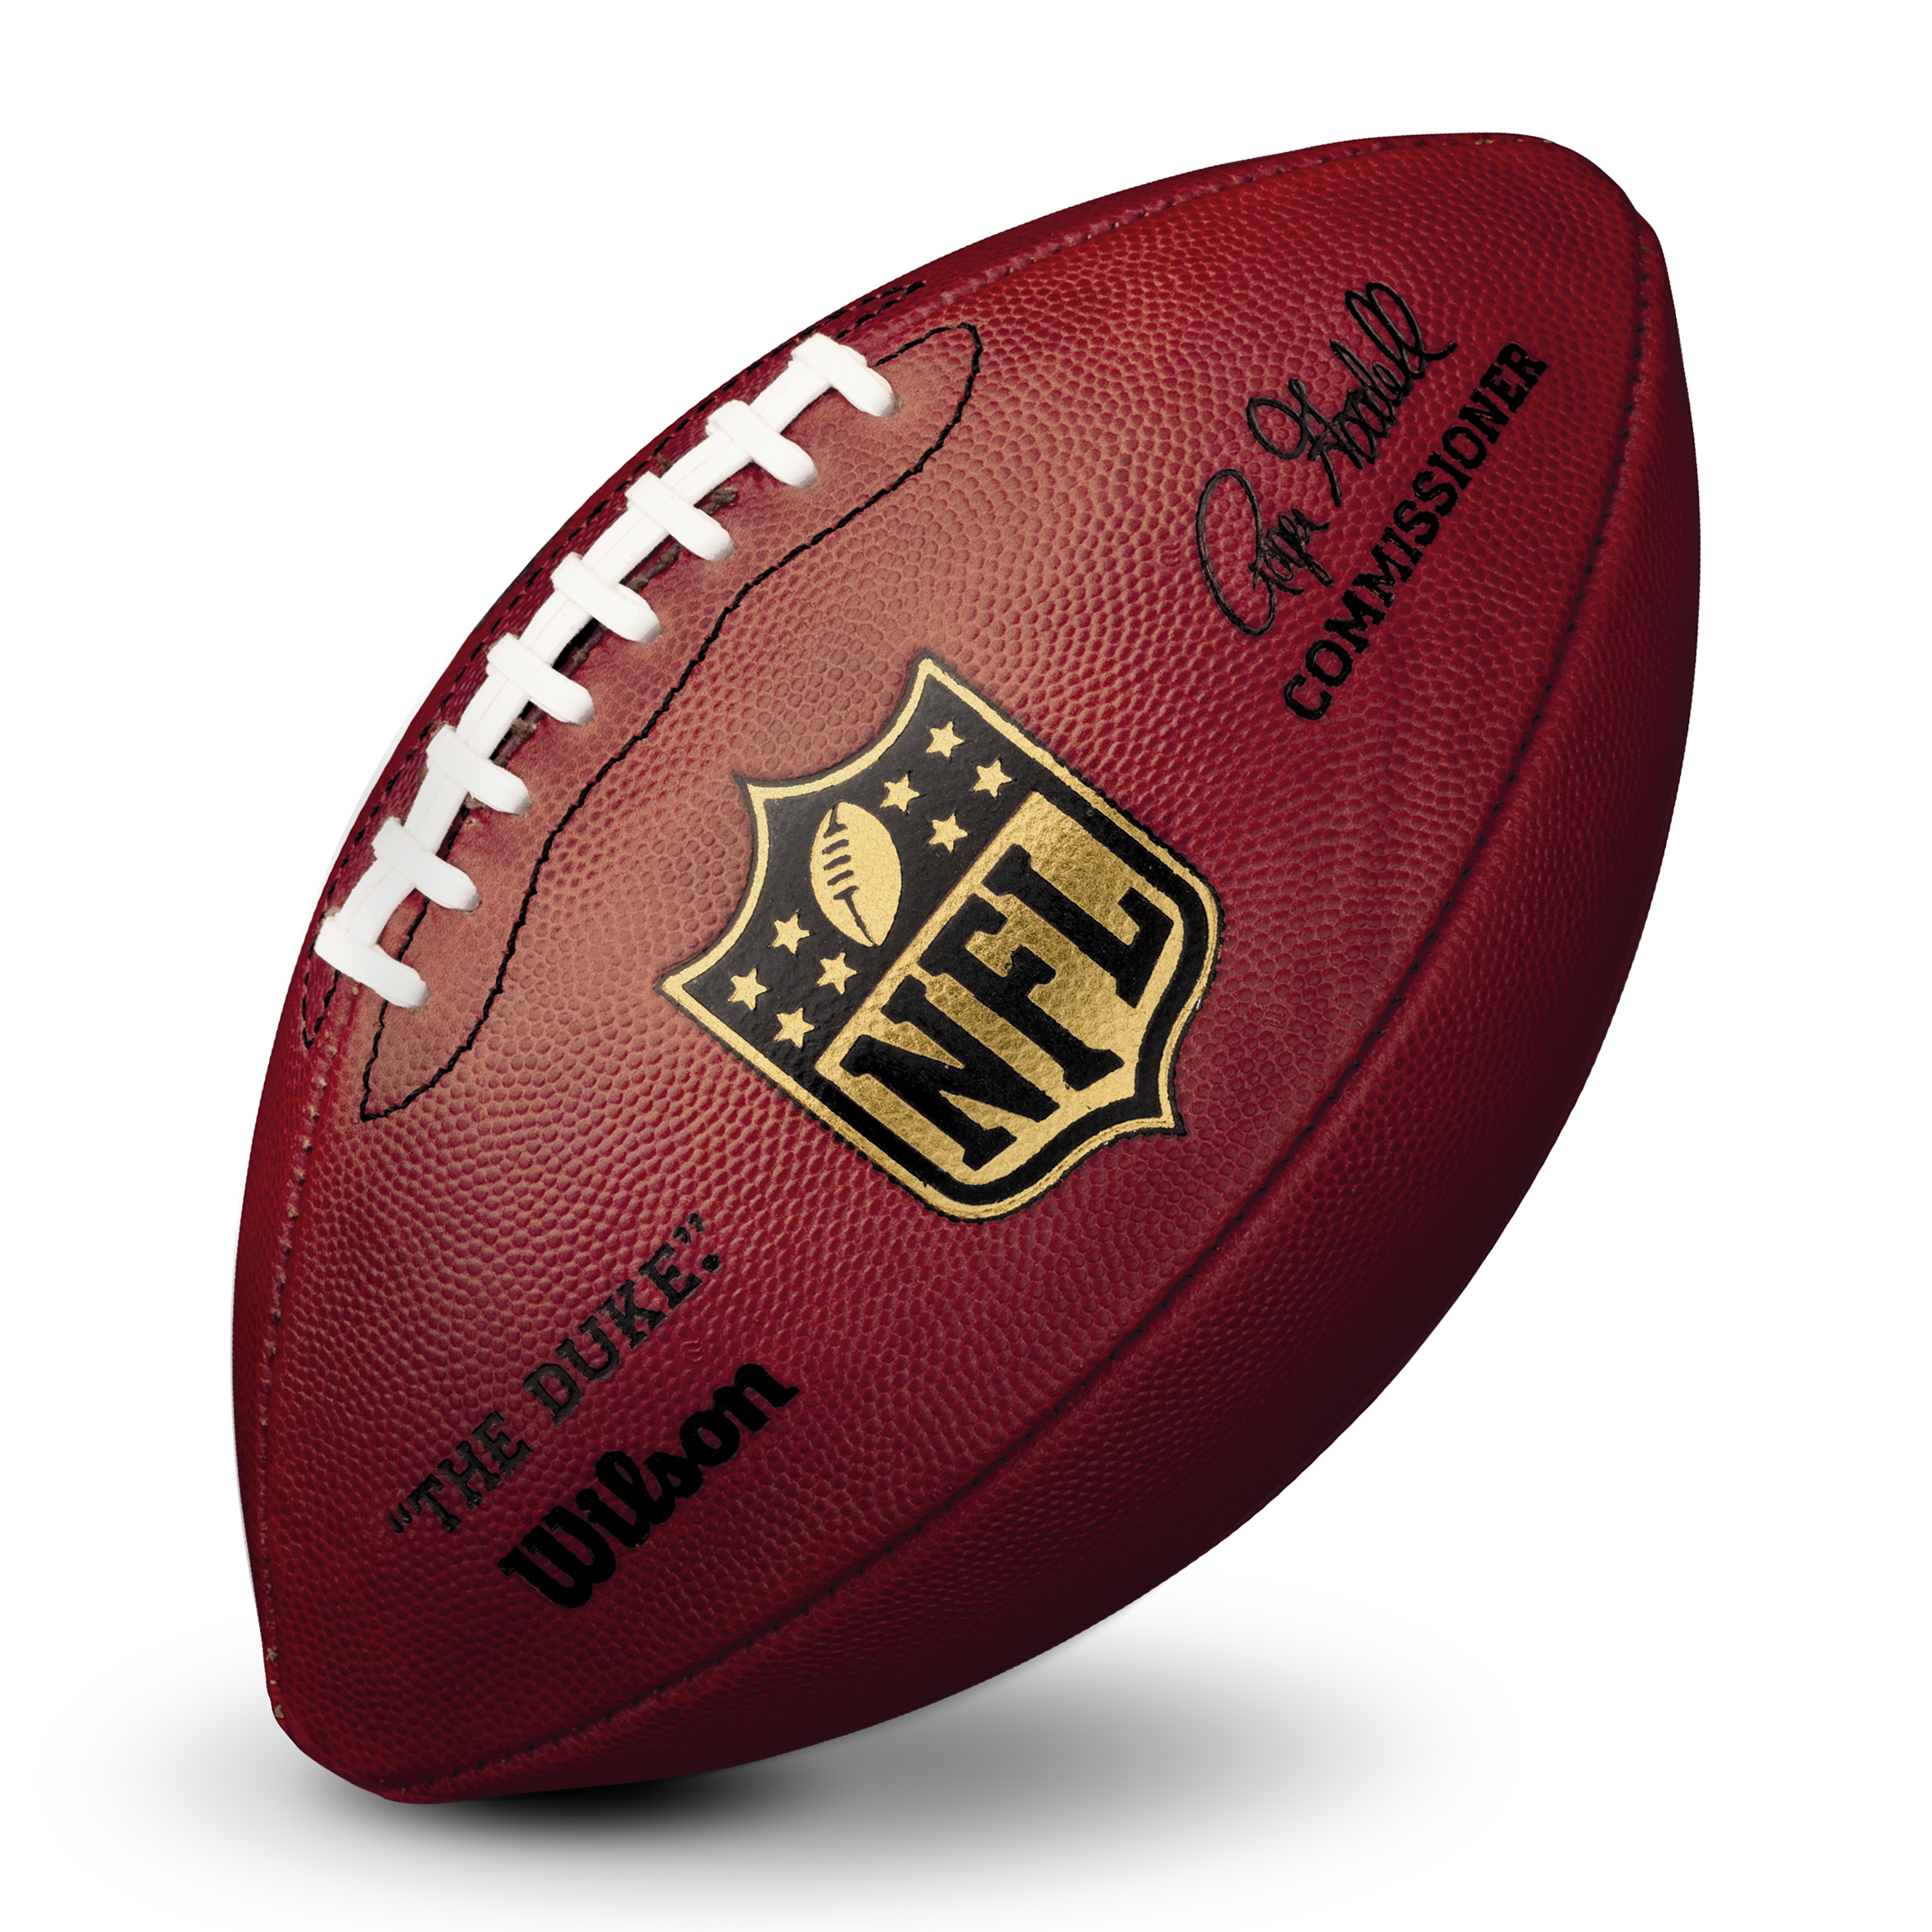 NFL Game Ball - The Duke